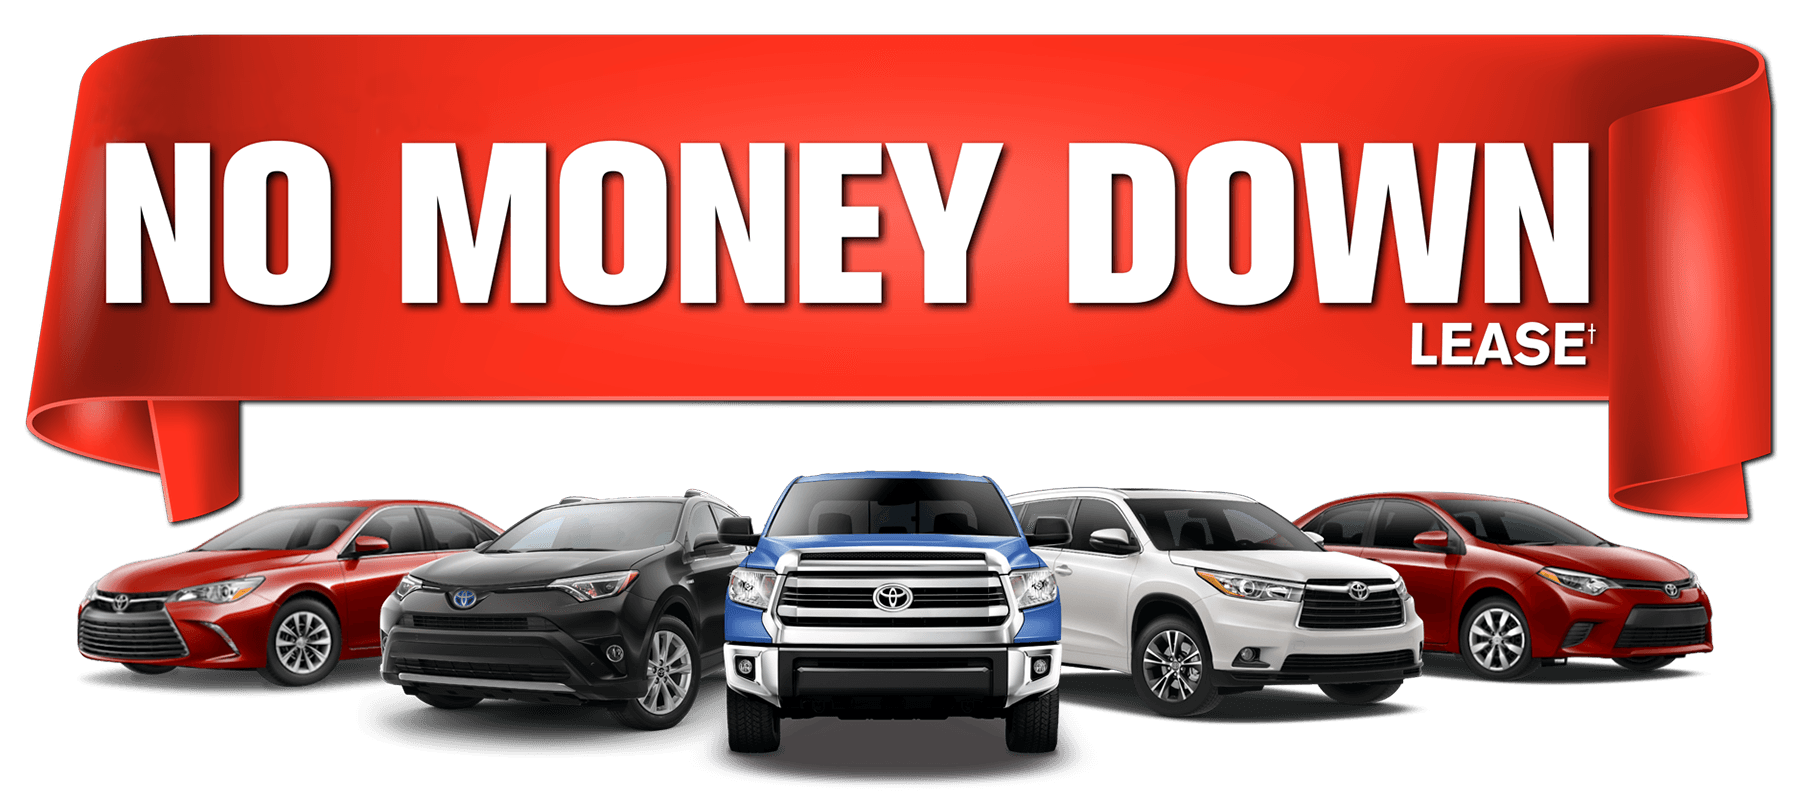 No Money Down Banner